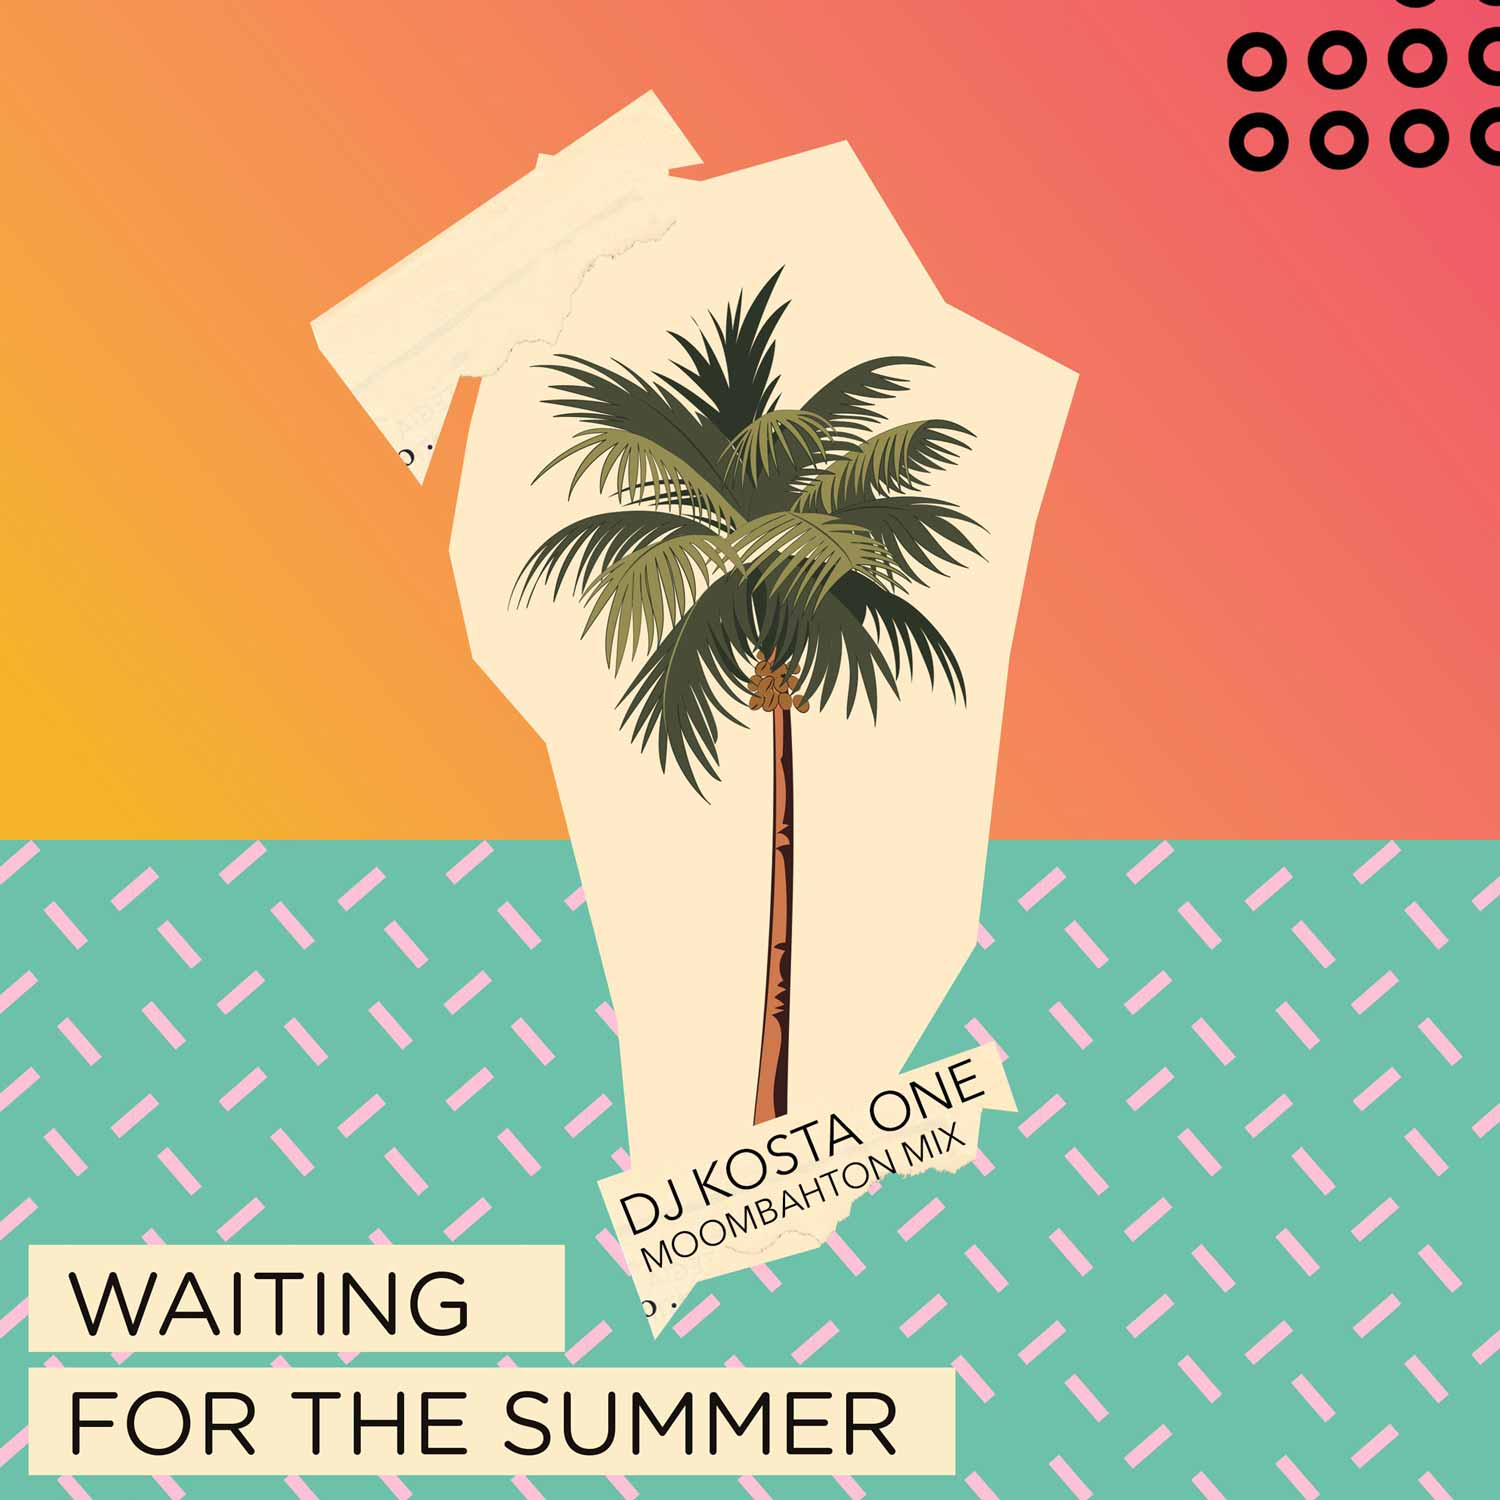 Wait-for-Summer-mix-by-DJ-Kosta-One-mp3-image